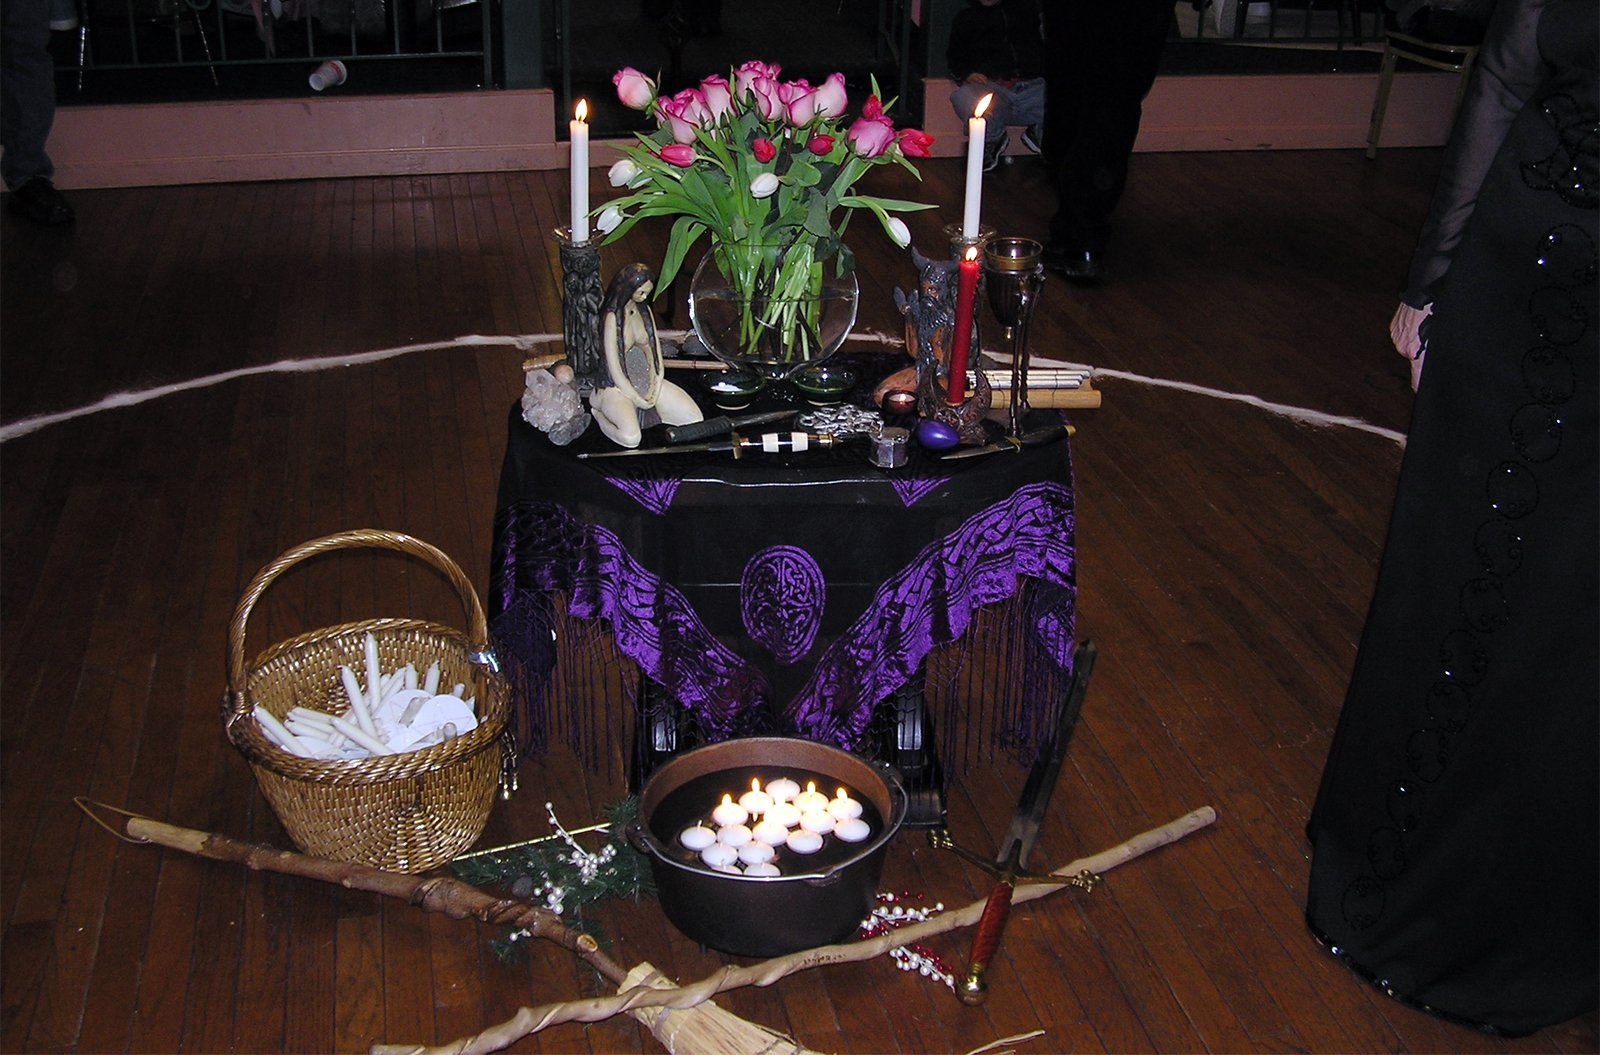 An Imbolc ritual altar. Photo by Rebecca Radcliff/Creative Commons